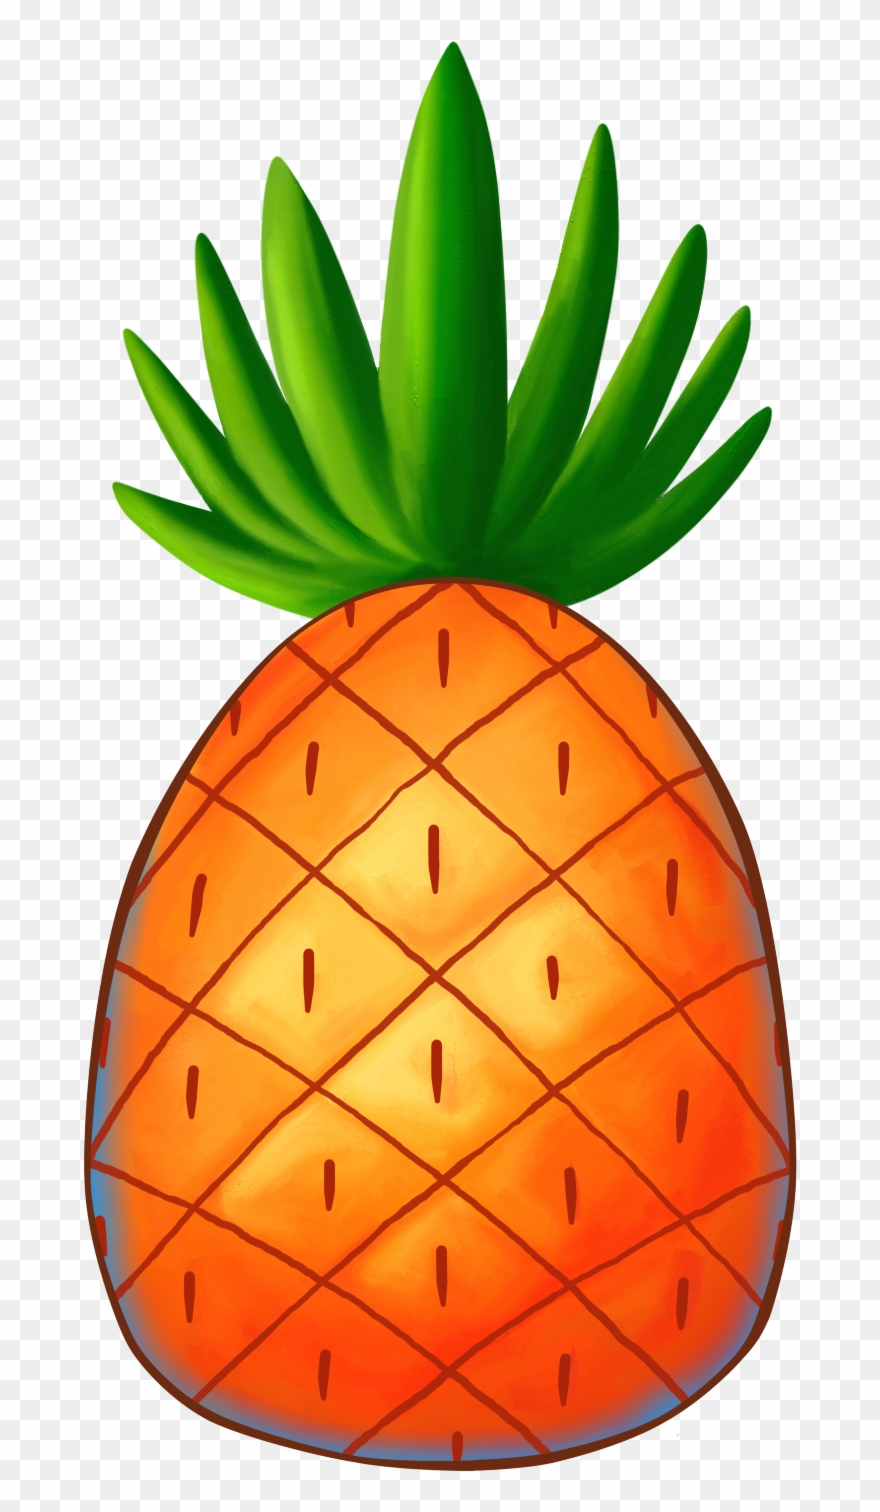 Pineapple clipart house. Spongebob png